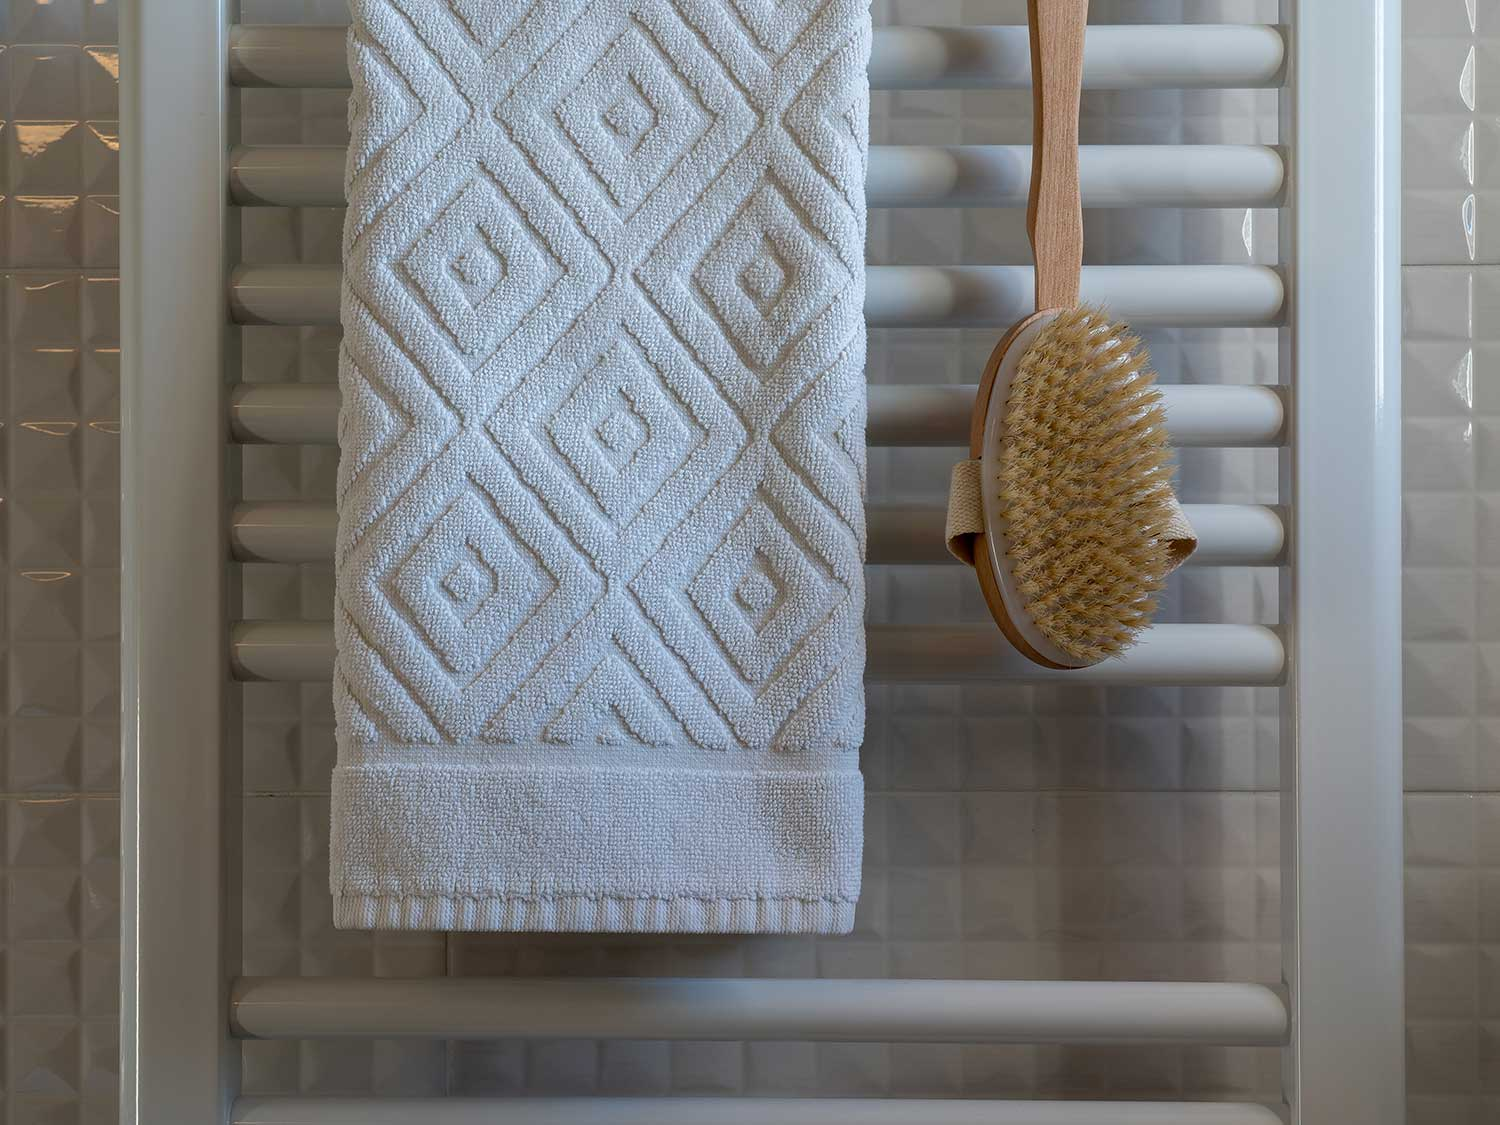 Shower scrubber and towel hanging in bathroom.